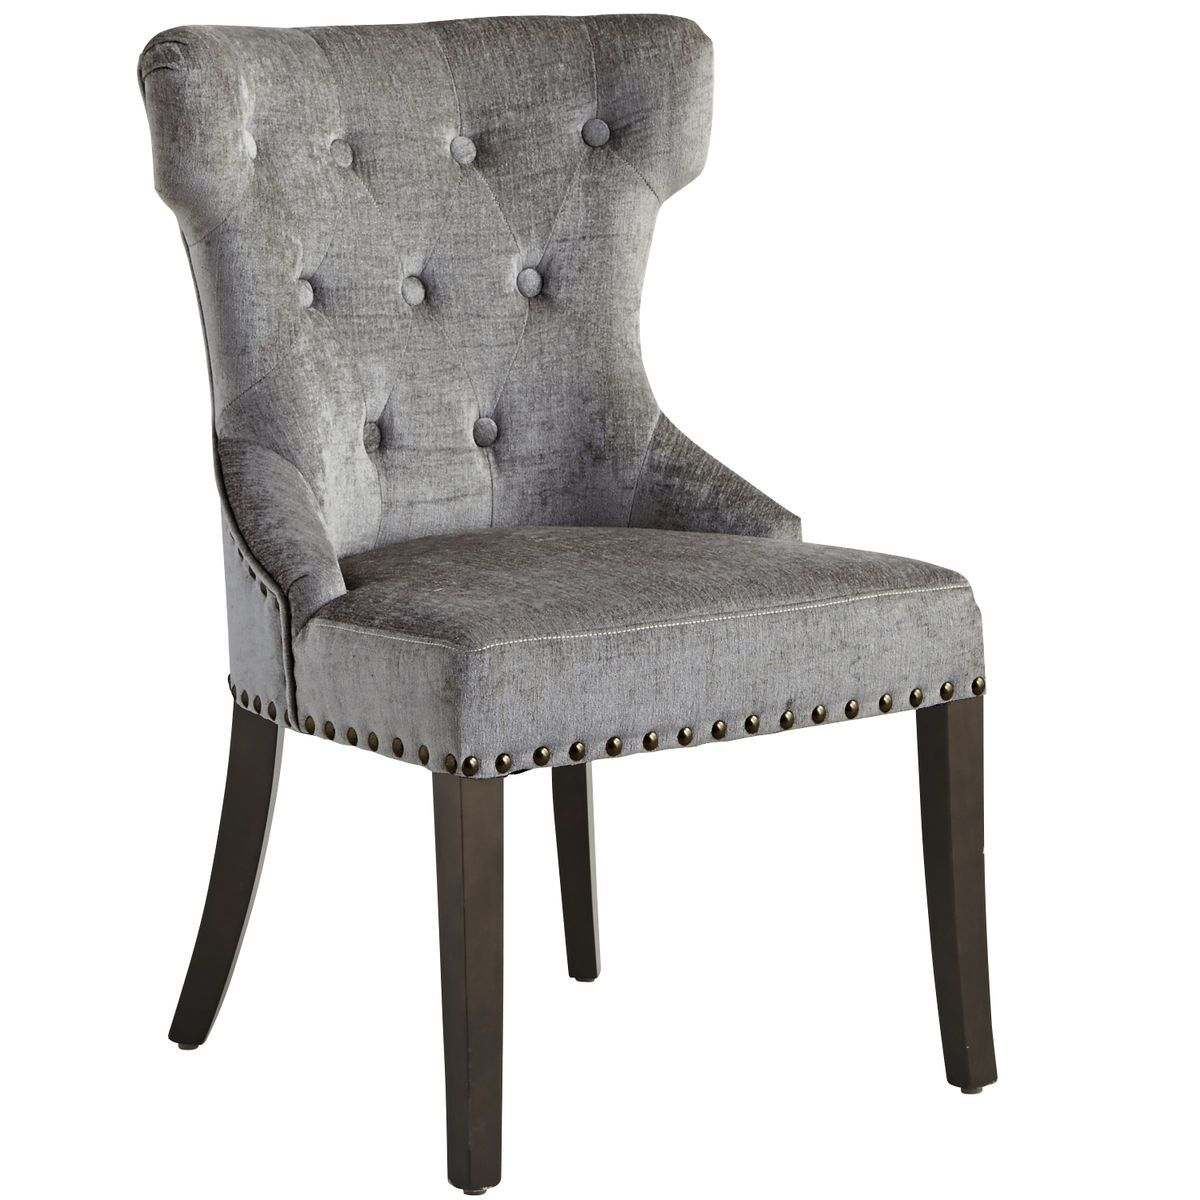 Room Hourglass Crushed Velvet Rain Dining Chair